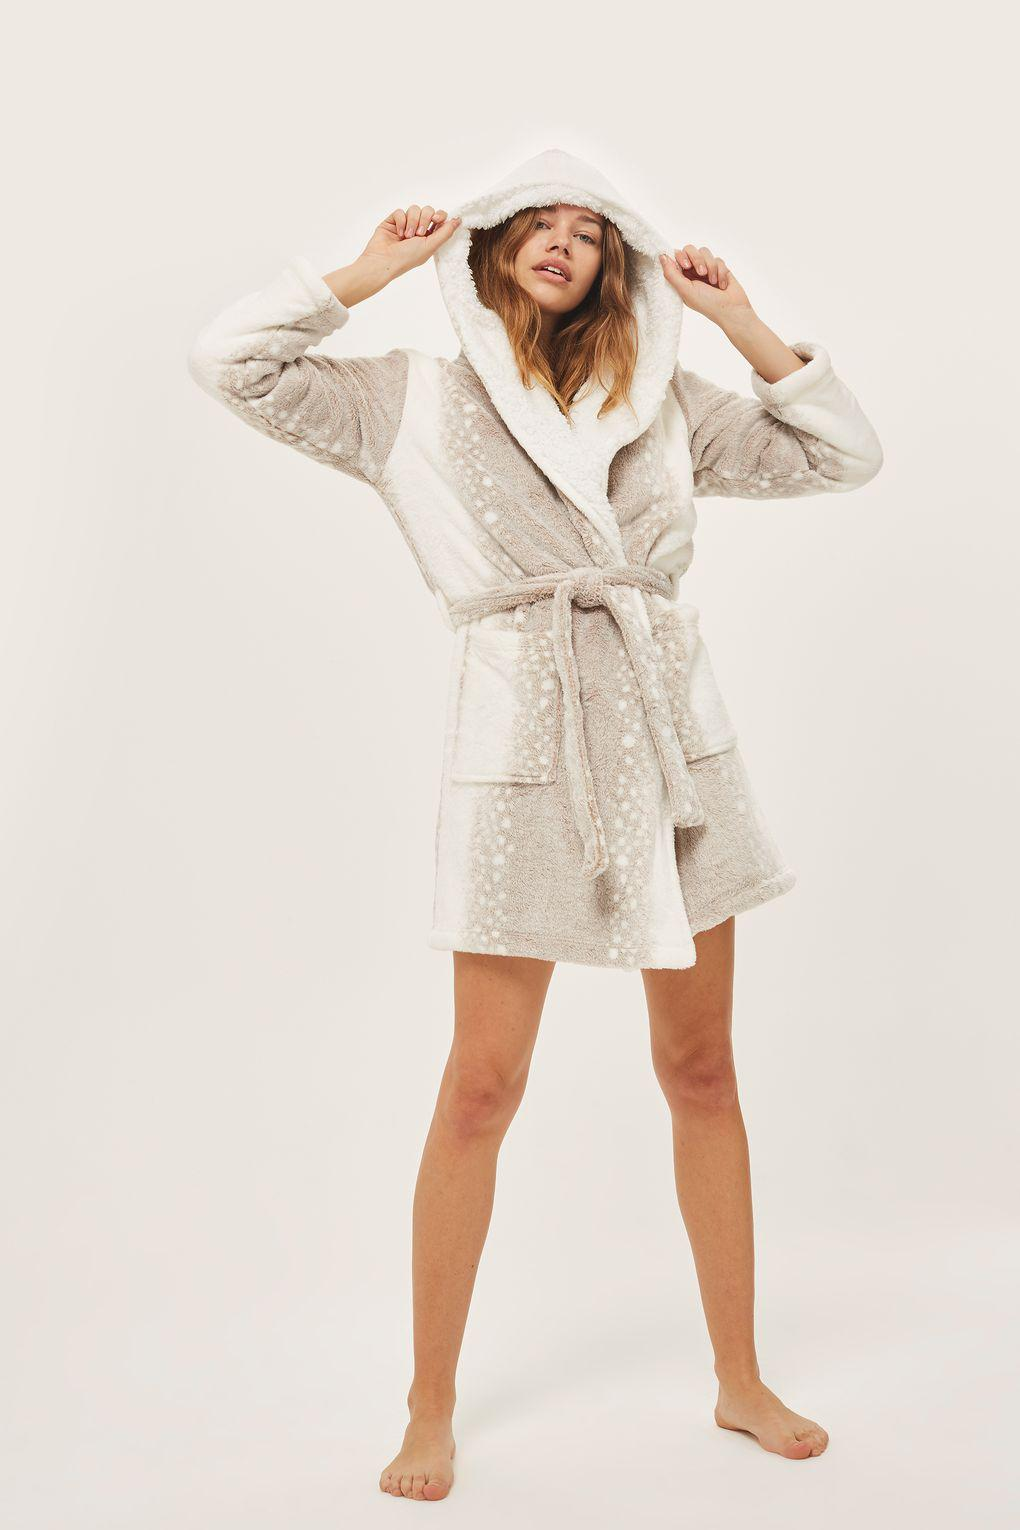 Womens Topshop Snow Leopard Print Fleece Hooded Short Robe, Size Small - White Womens Topshop Snow Leopard Print Fleece Hooded Short Robe, Size Small - White new pics